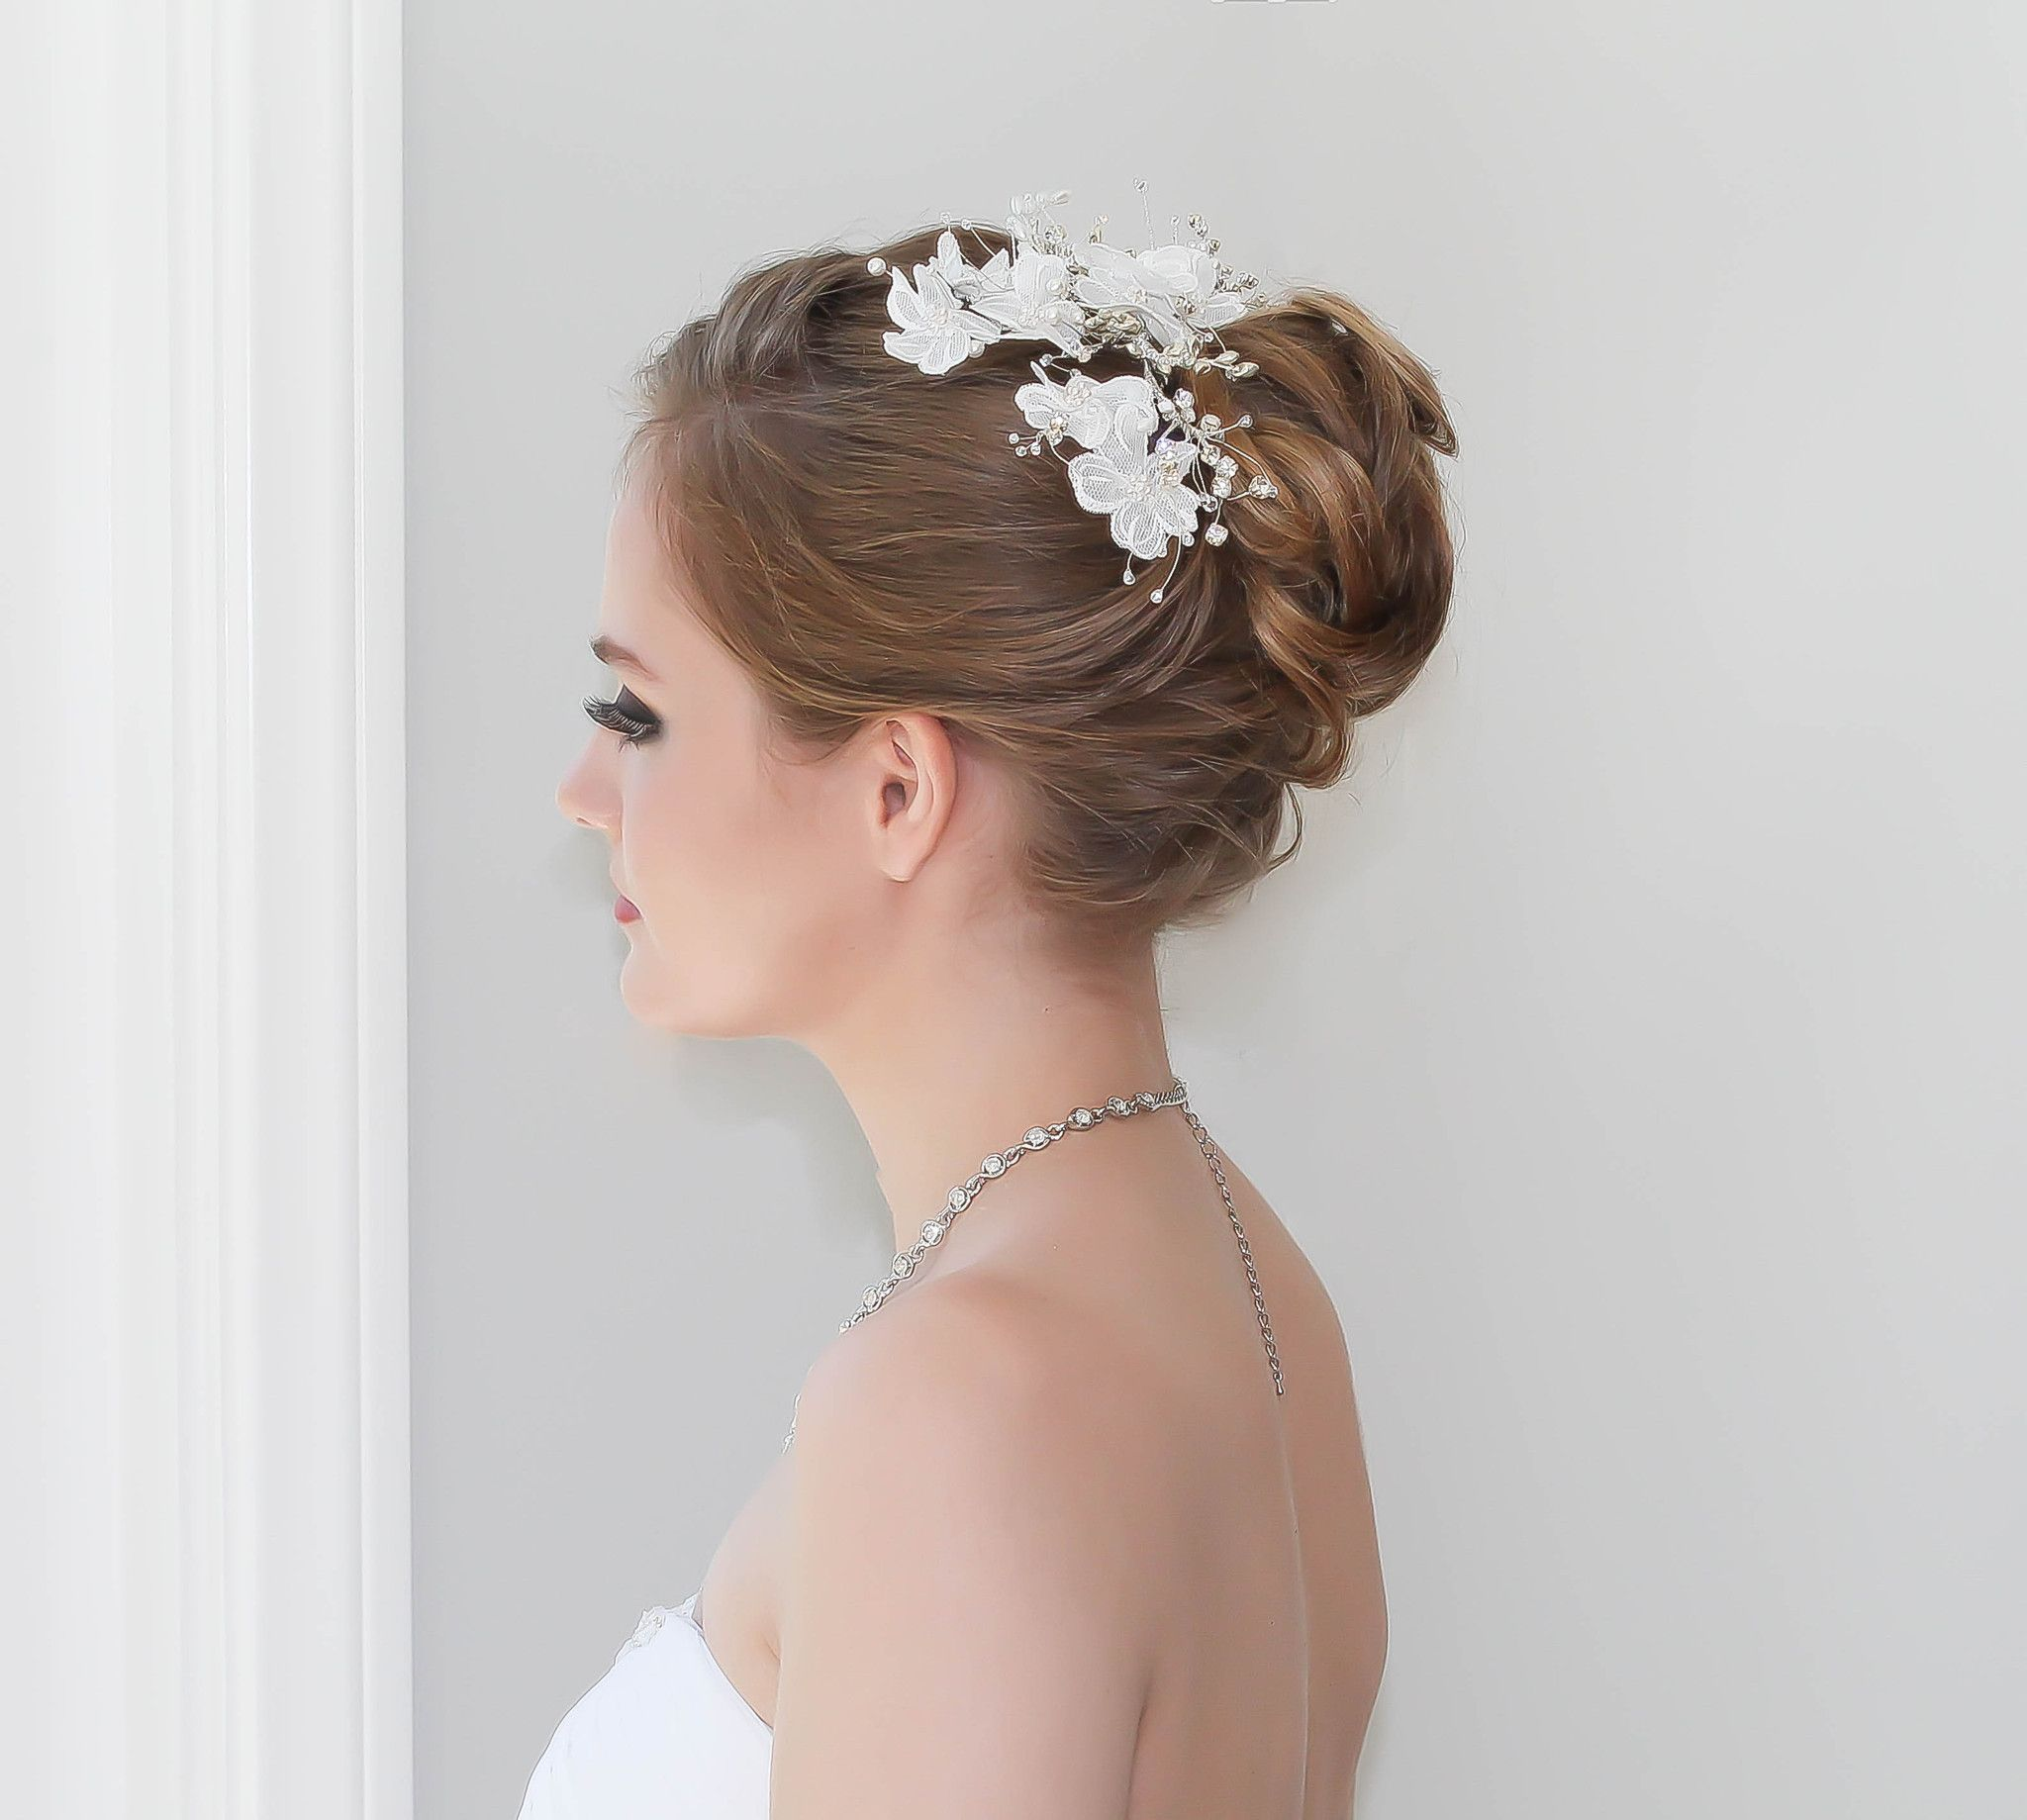 Pin by Martin Girl on Hairstyles | Pinterest | Headpieces, Wedding ...